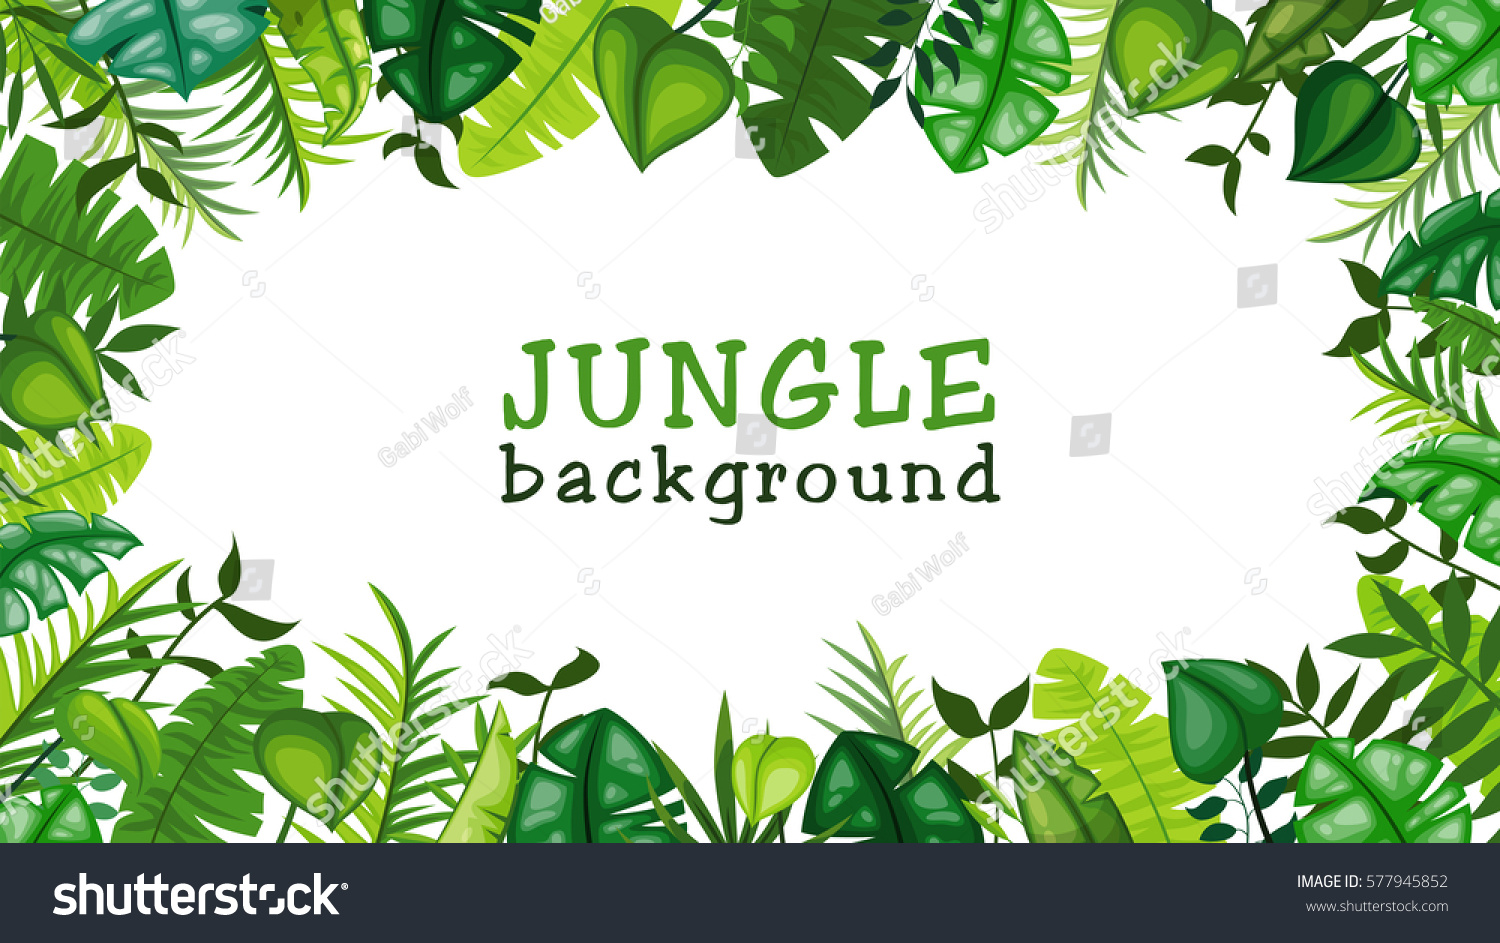 Jungle Vector Background Stock Vector (Royalty Free) 577945852.